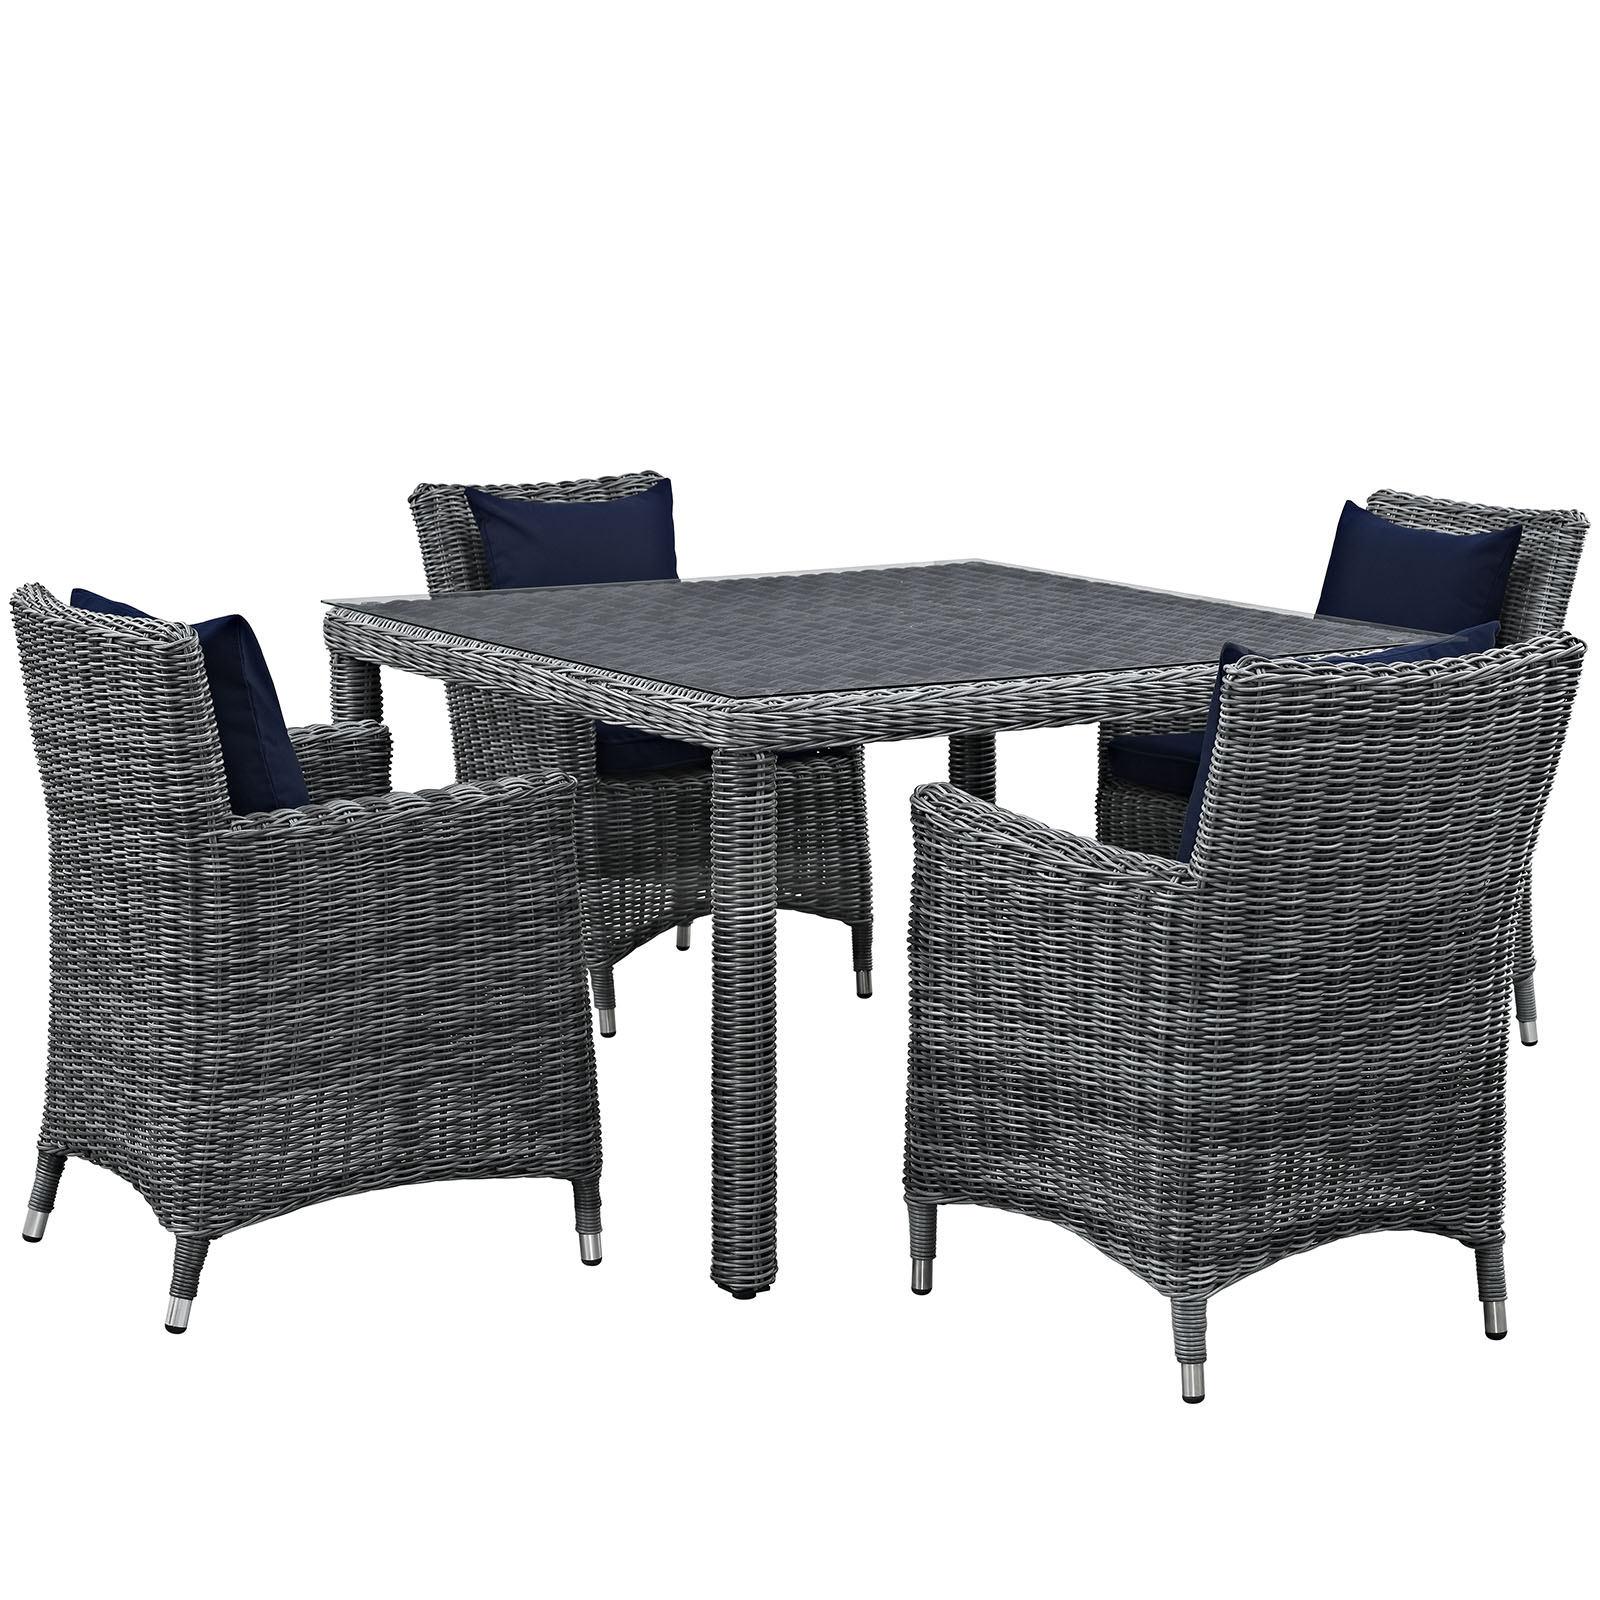 Modern Contemporary Urban Design Outdoor Patio Balcony Five PCS Dining Chairs and Table Set, Navy Blue, Rattan